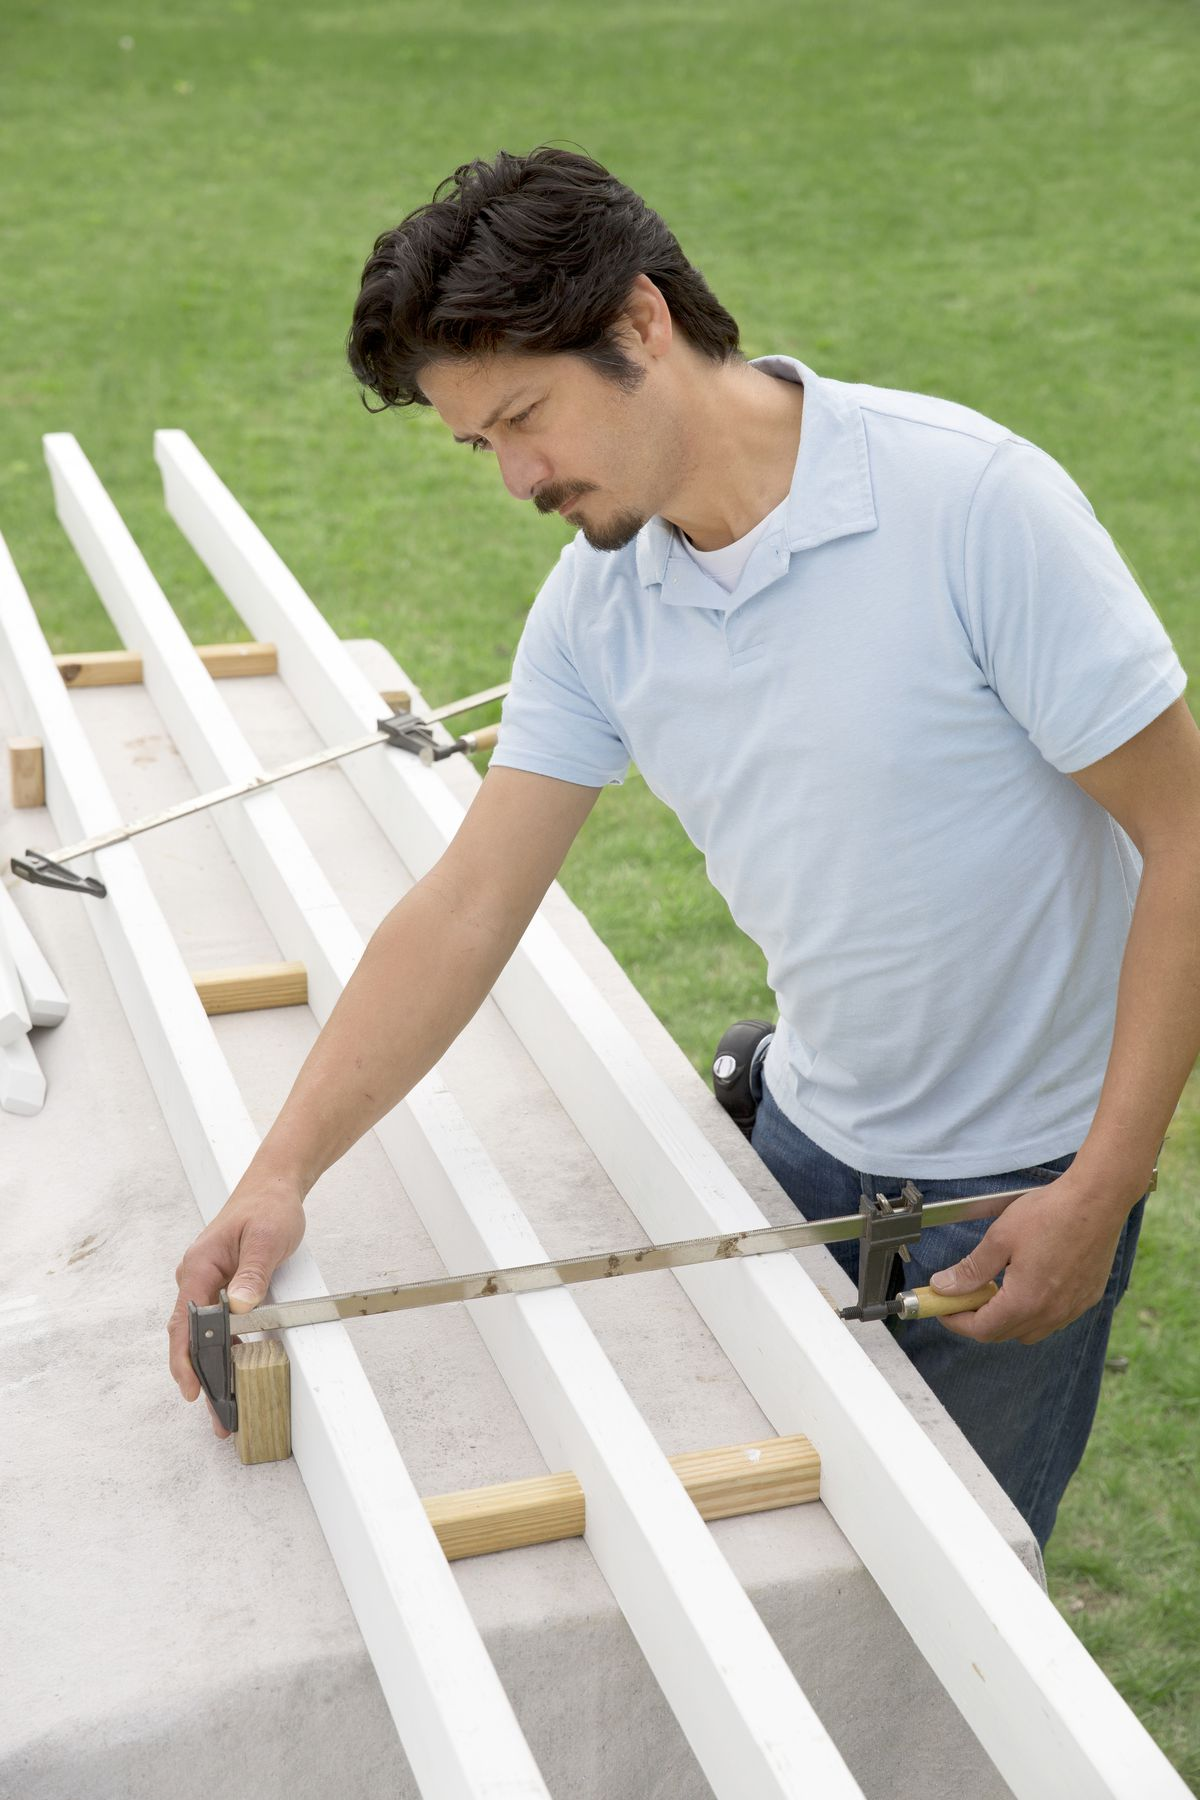 Man Clamps Assembly Together Of Garage Pergola